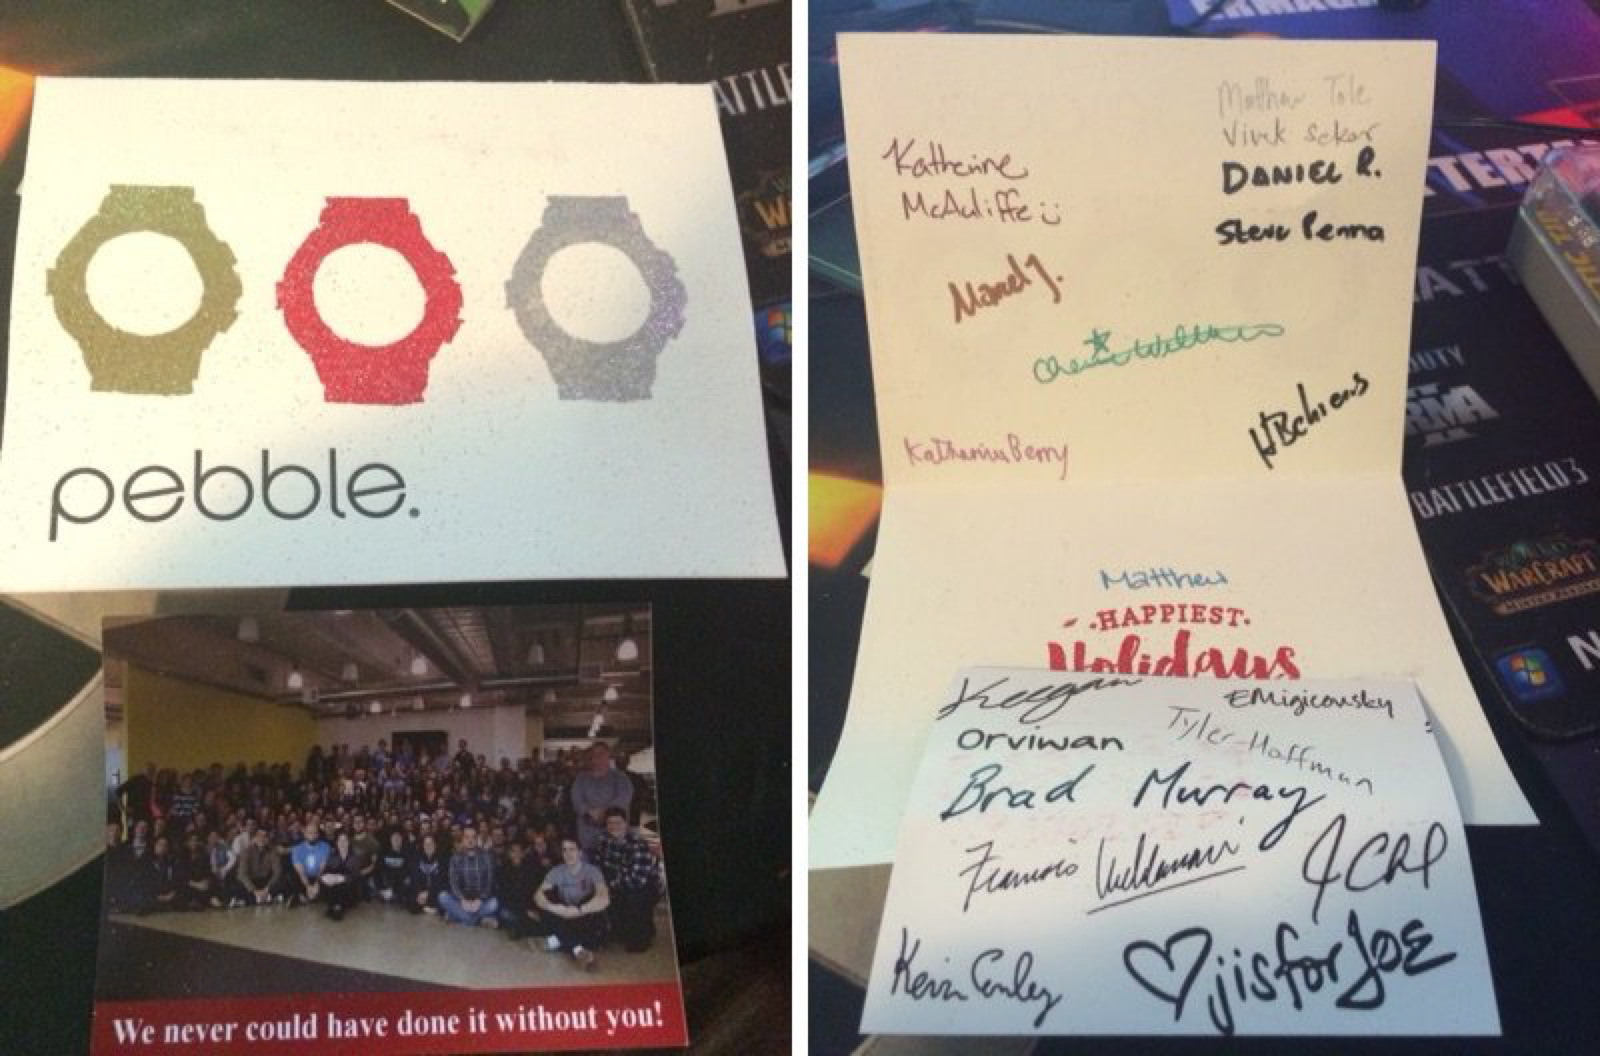 A thank you card Pebble sent me